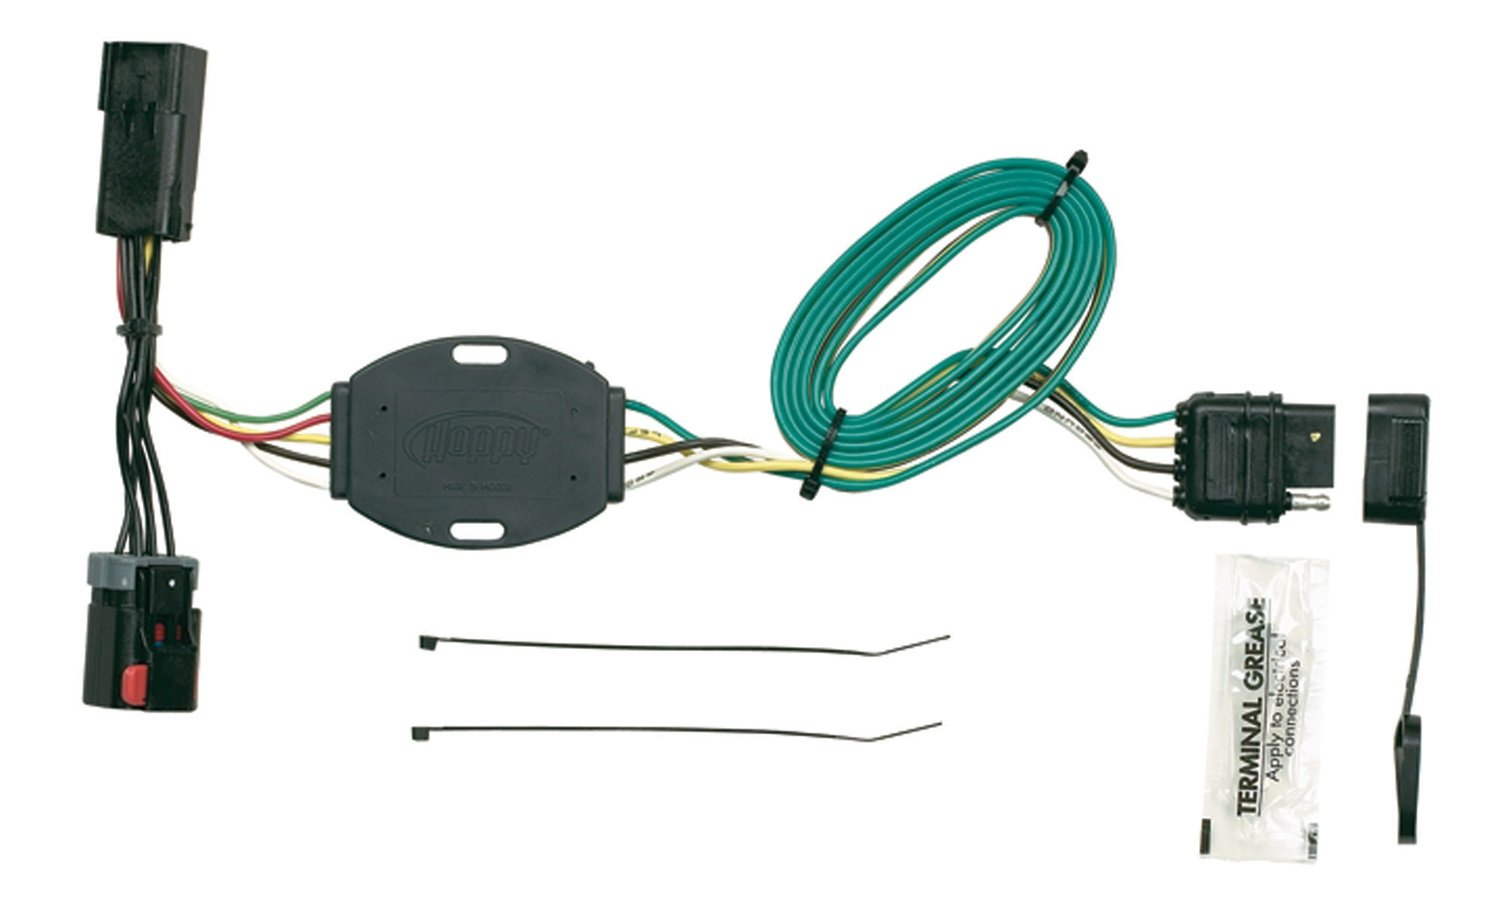 Amazoncom Hopkins 42225 PlugIn Simple Vehicle Wiring Kit Automotive